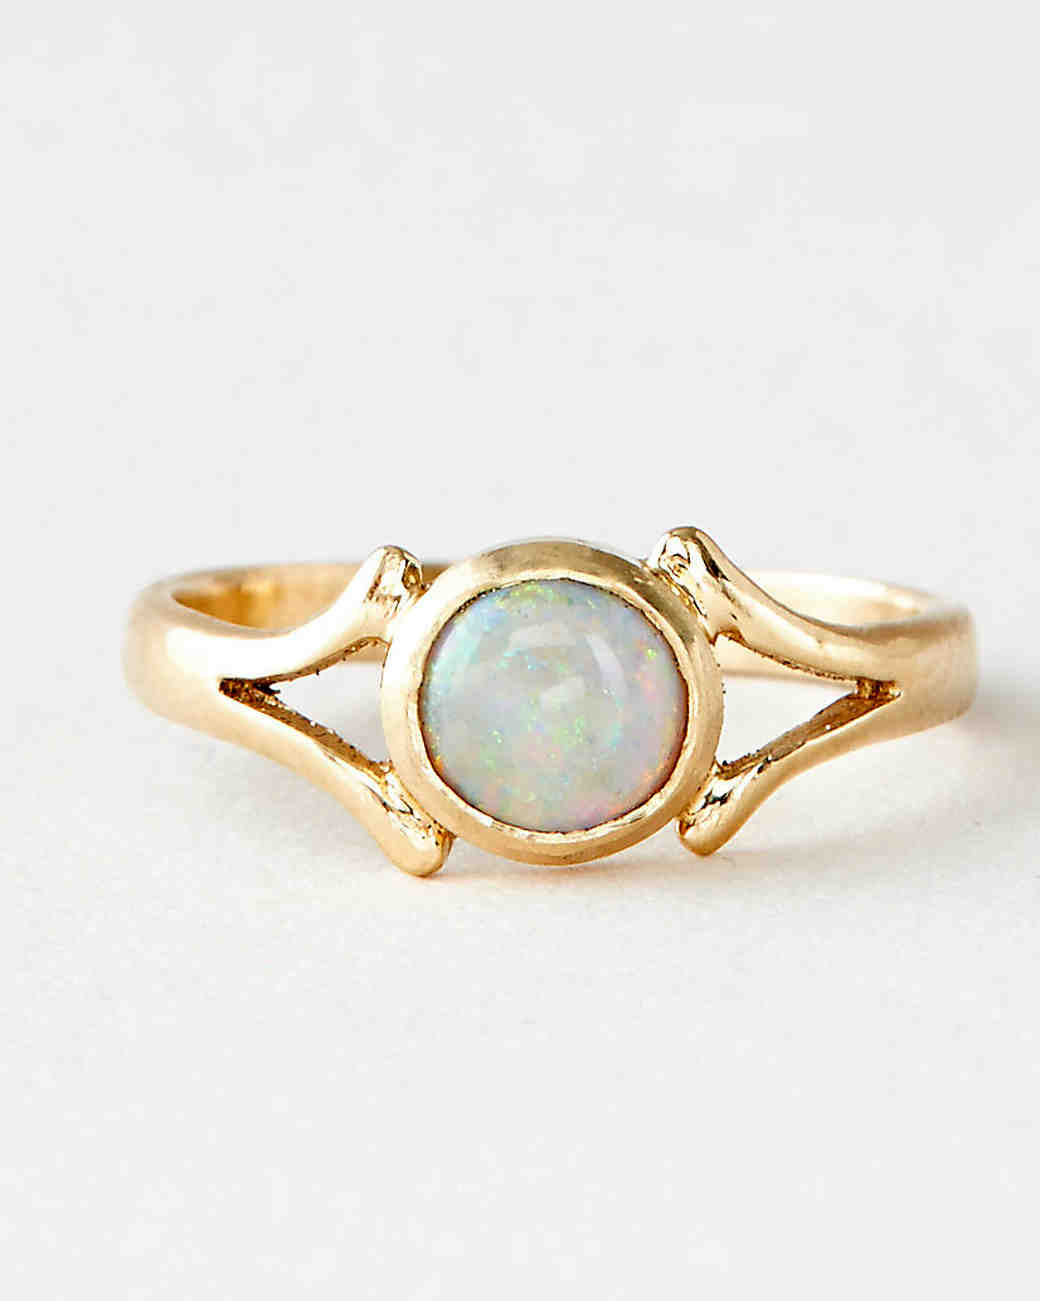 opal-ring-talon-stevenalan-0115.jpg